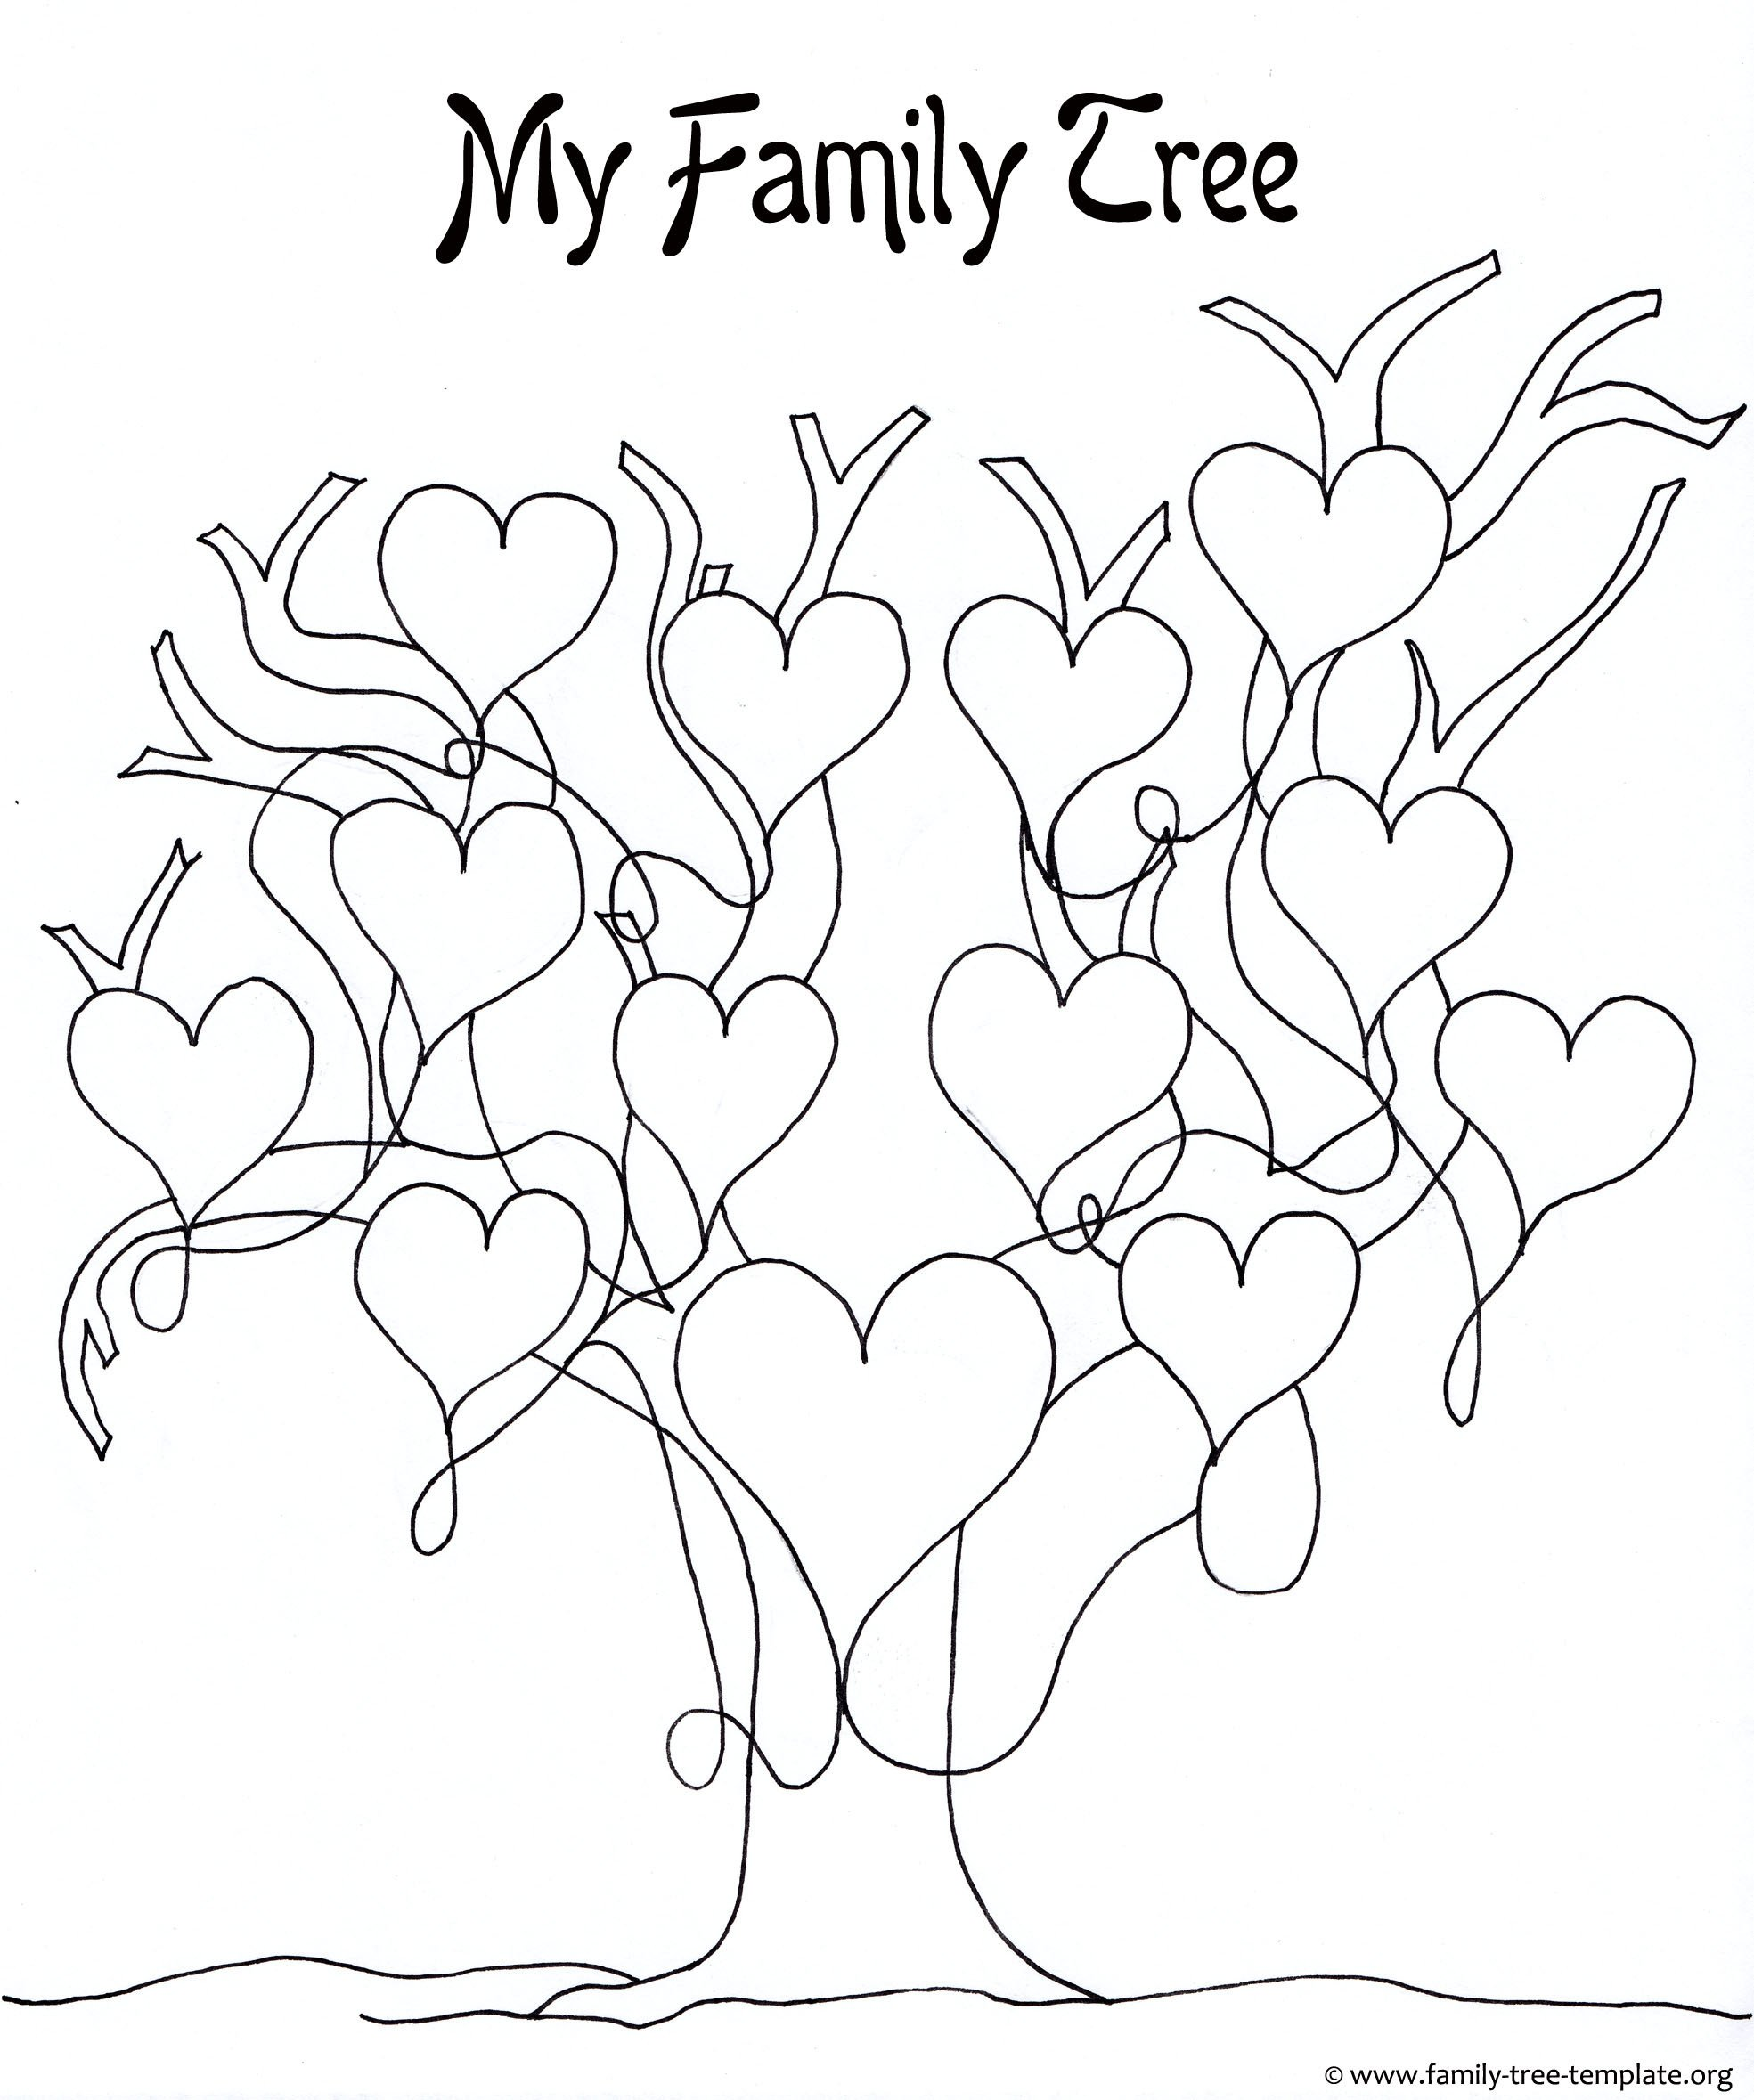 Free Printable Family Tree Template A Printable Blank Family Tree to Make Your Kids Genealogy